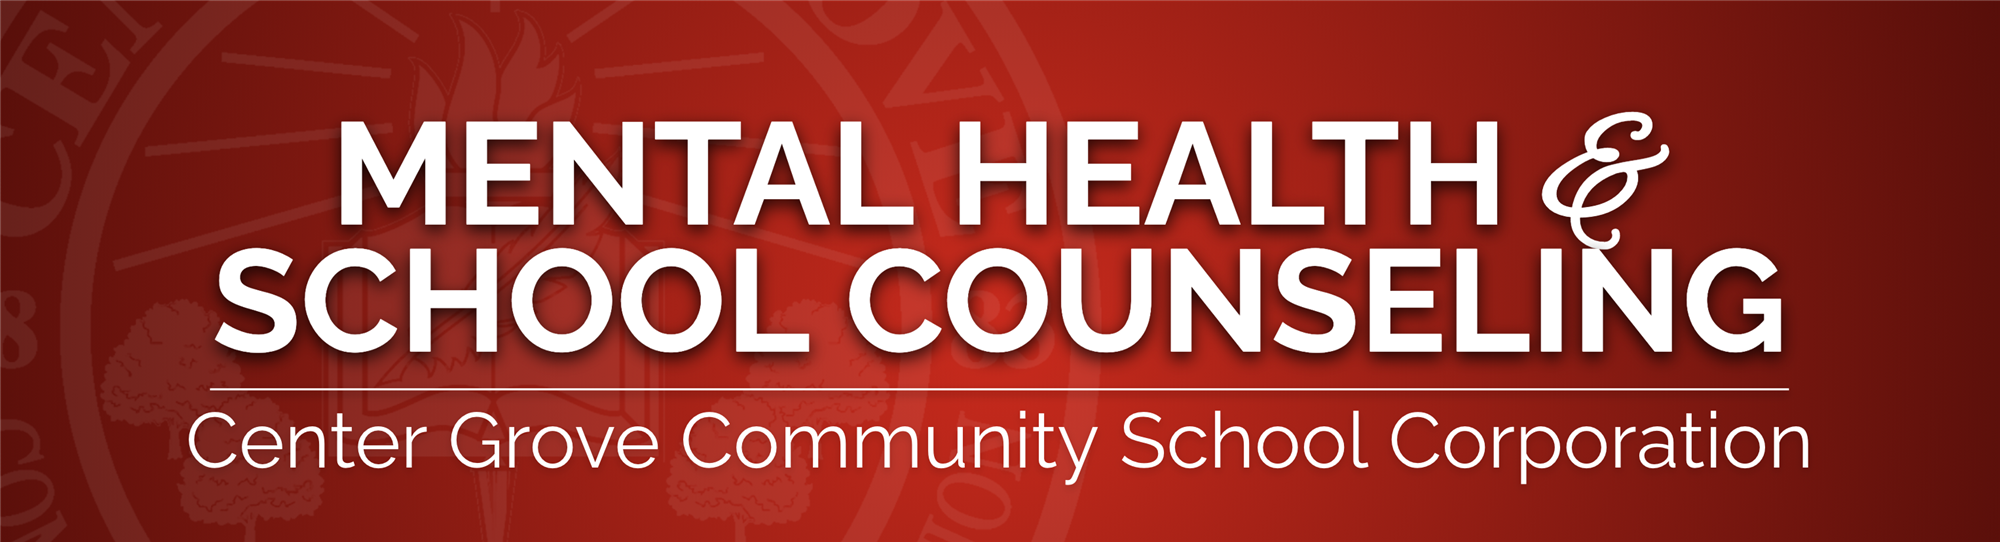 Mental Health & School Counseling